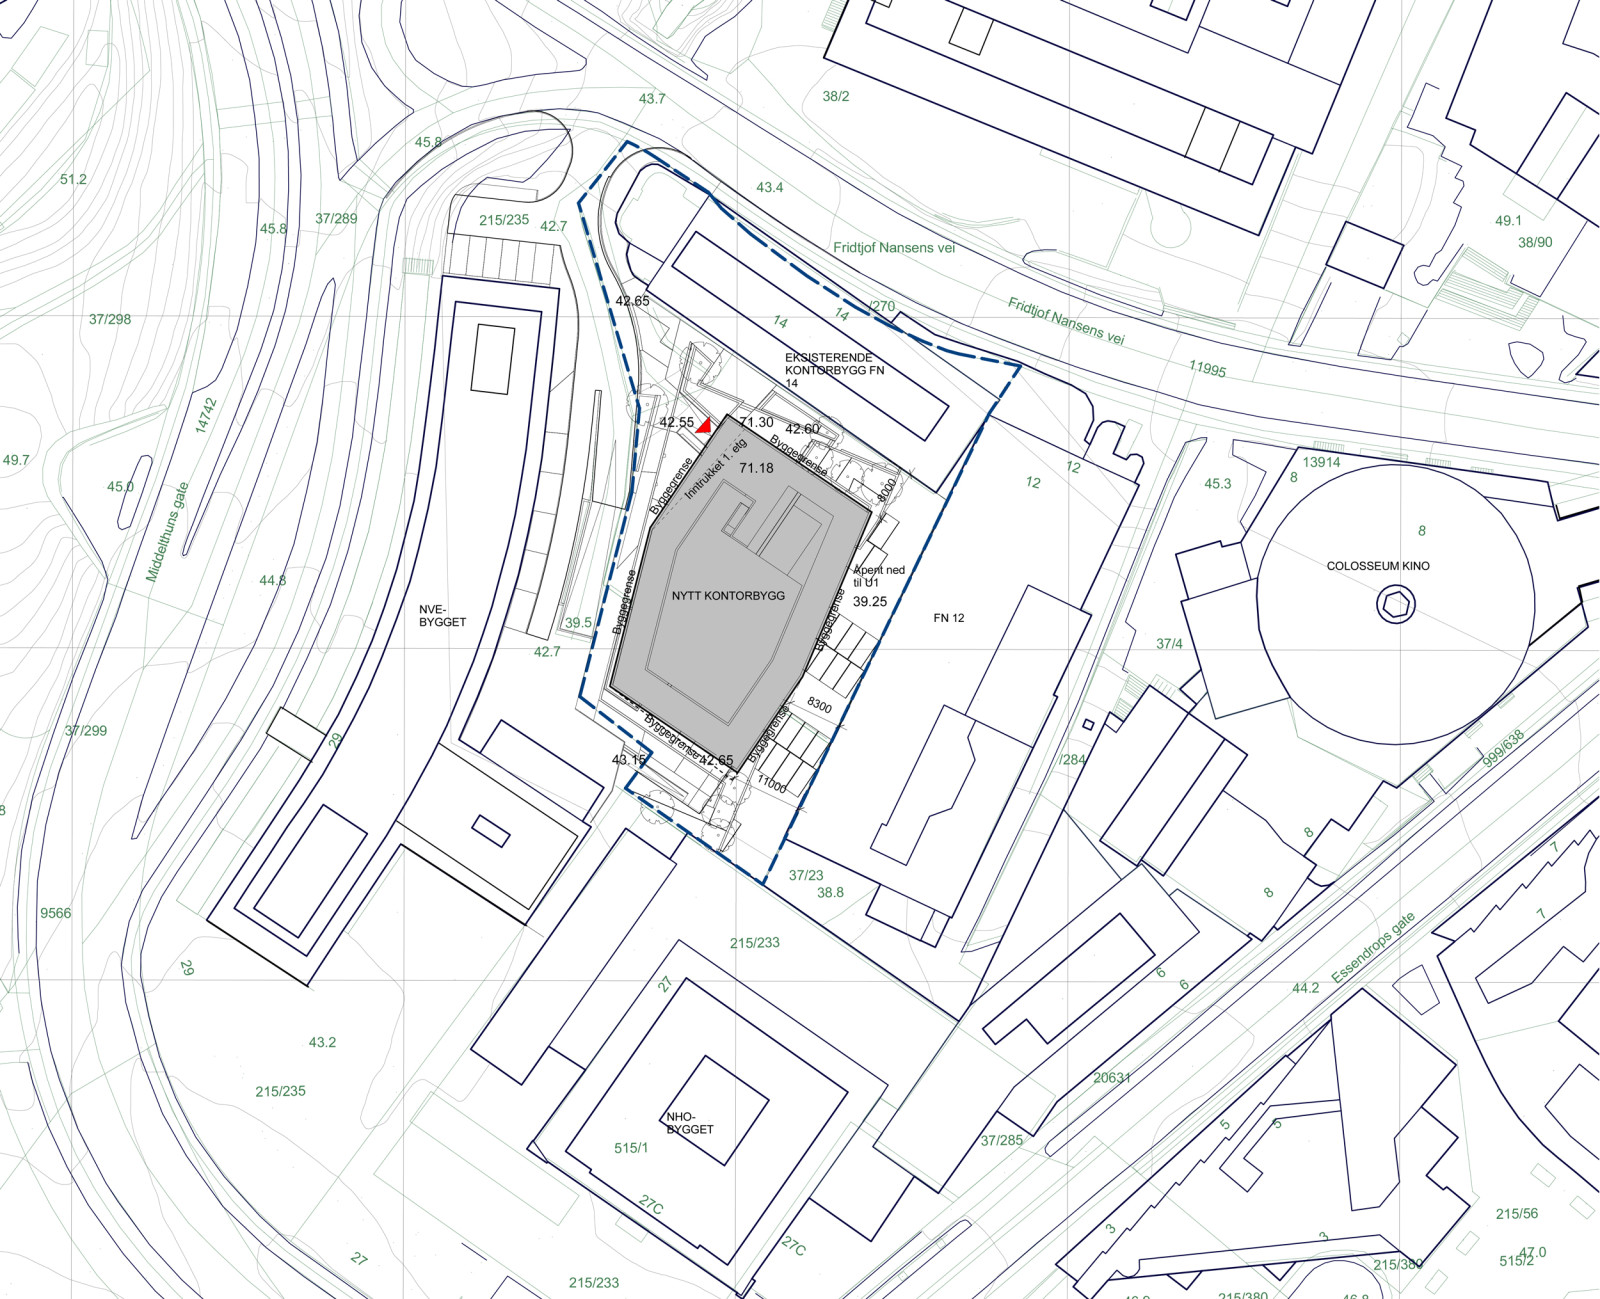 Siteplan. The new building was established in the core of a urban quarter in Majorstua, Oslo.